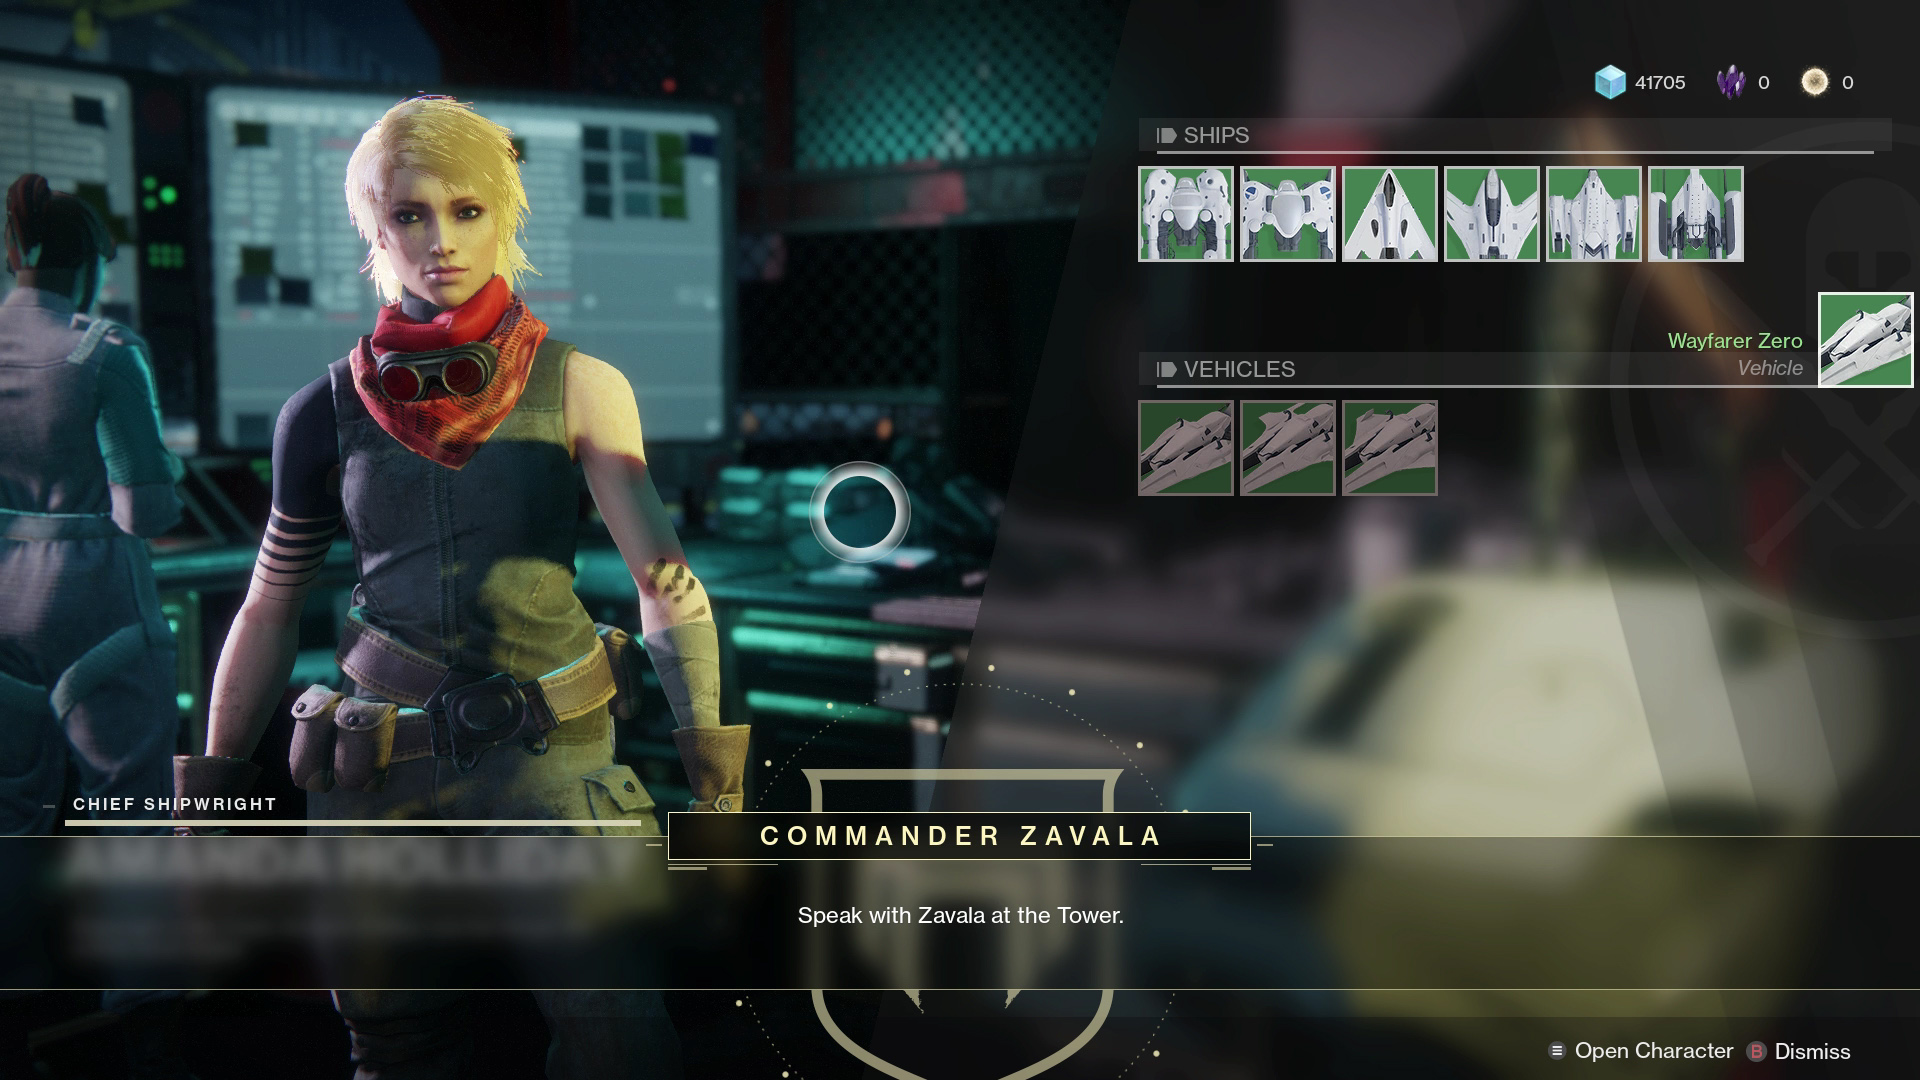 You will need to find Amanda Holliday in the Social Space to receive your first Sparrow in Destiny 2.